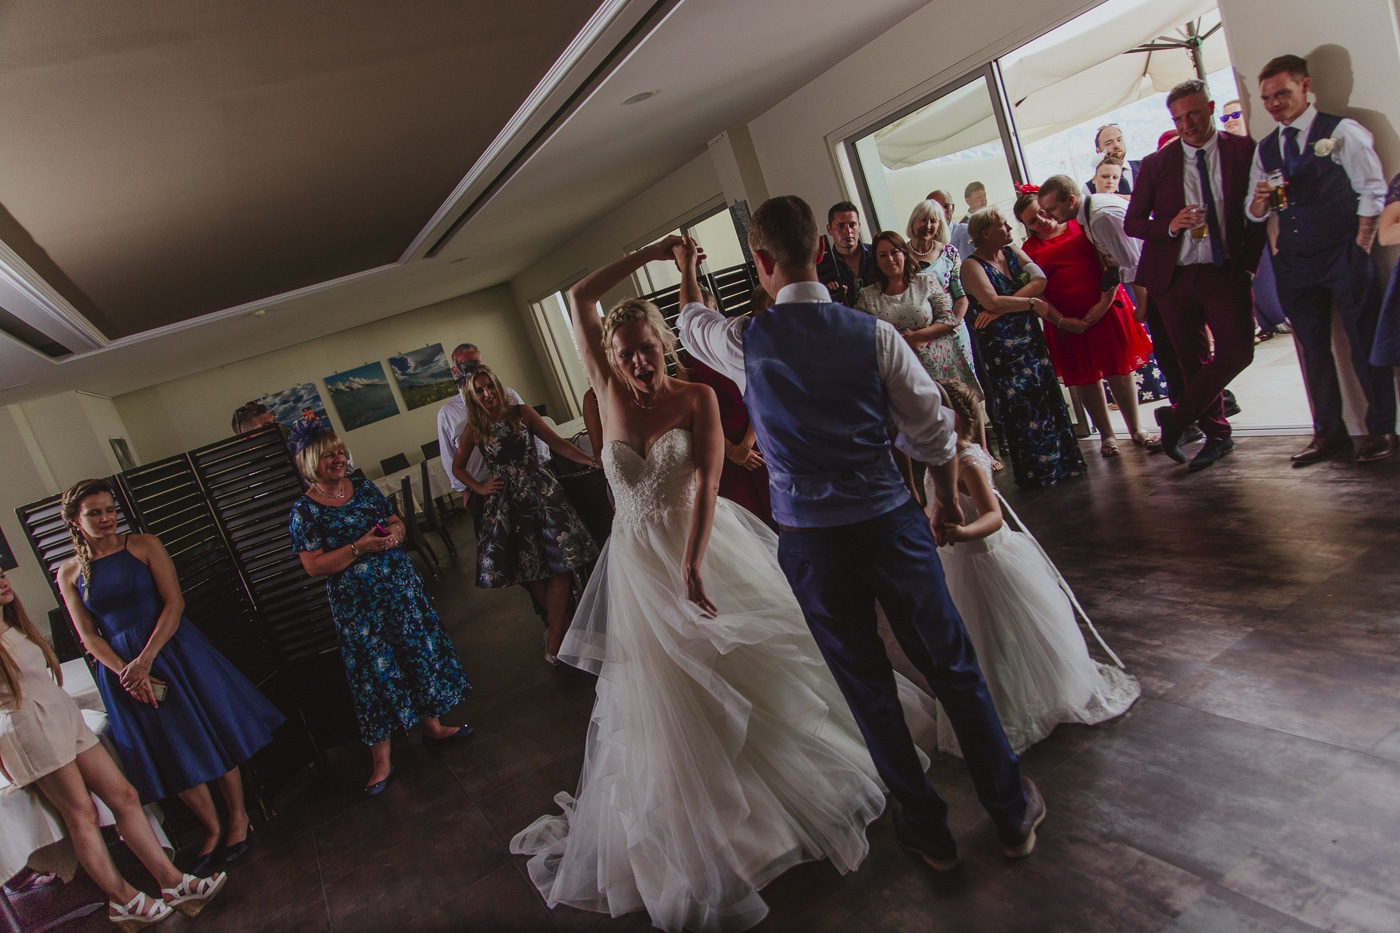 Happy bride spinning on the dance floor by her husband and small bridesmaid whilst wedding guests look on by Joshua Wyborn